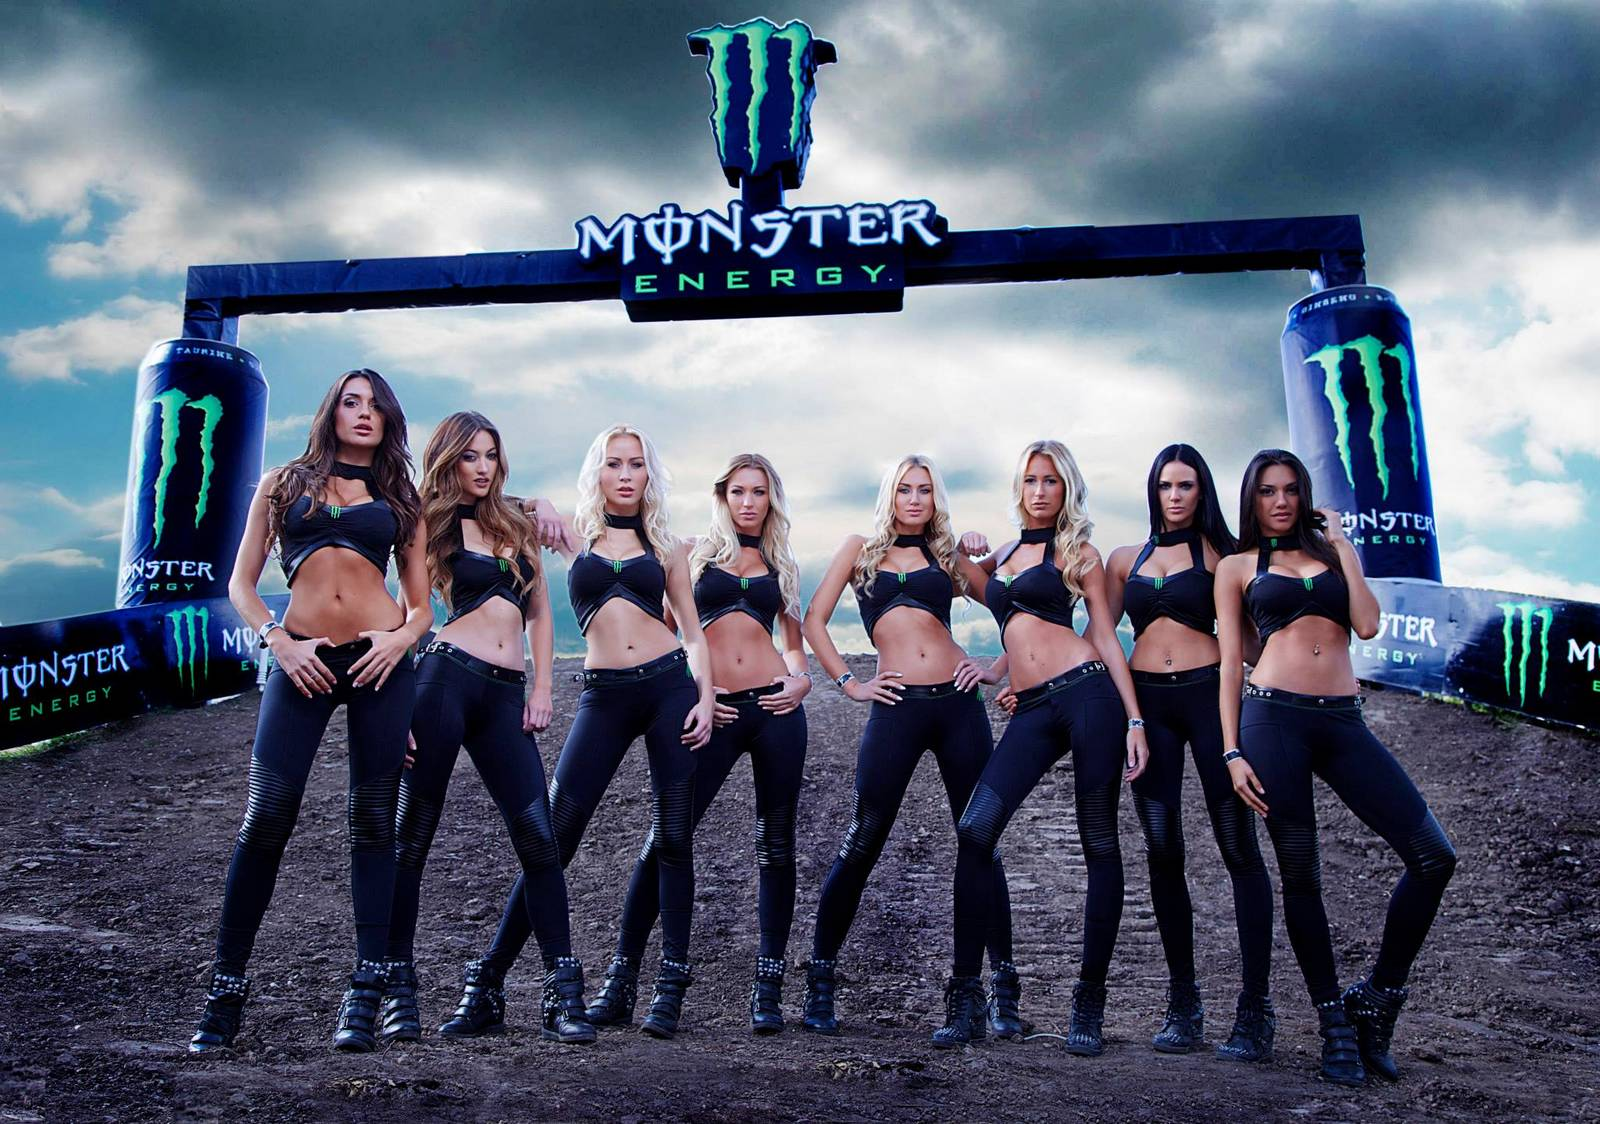 Miss monster energy naked pics sexy pic